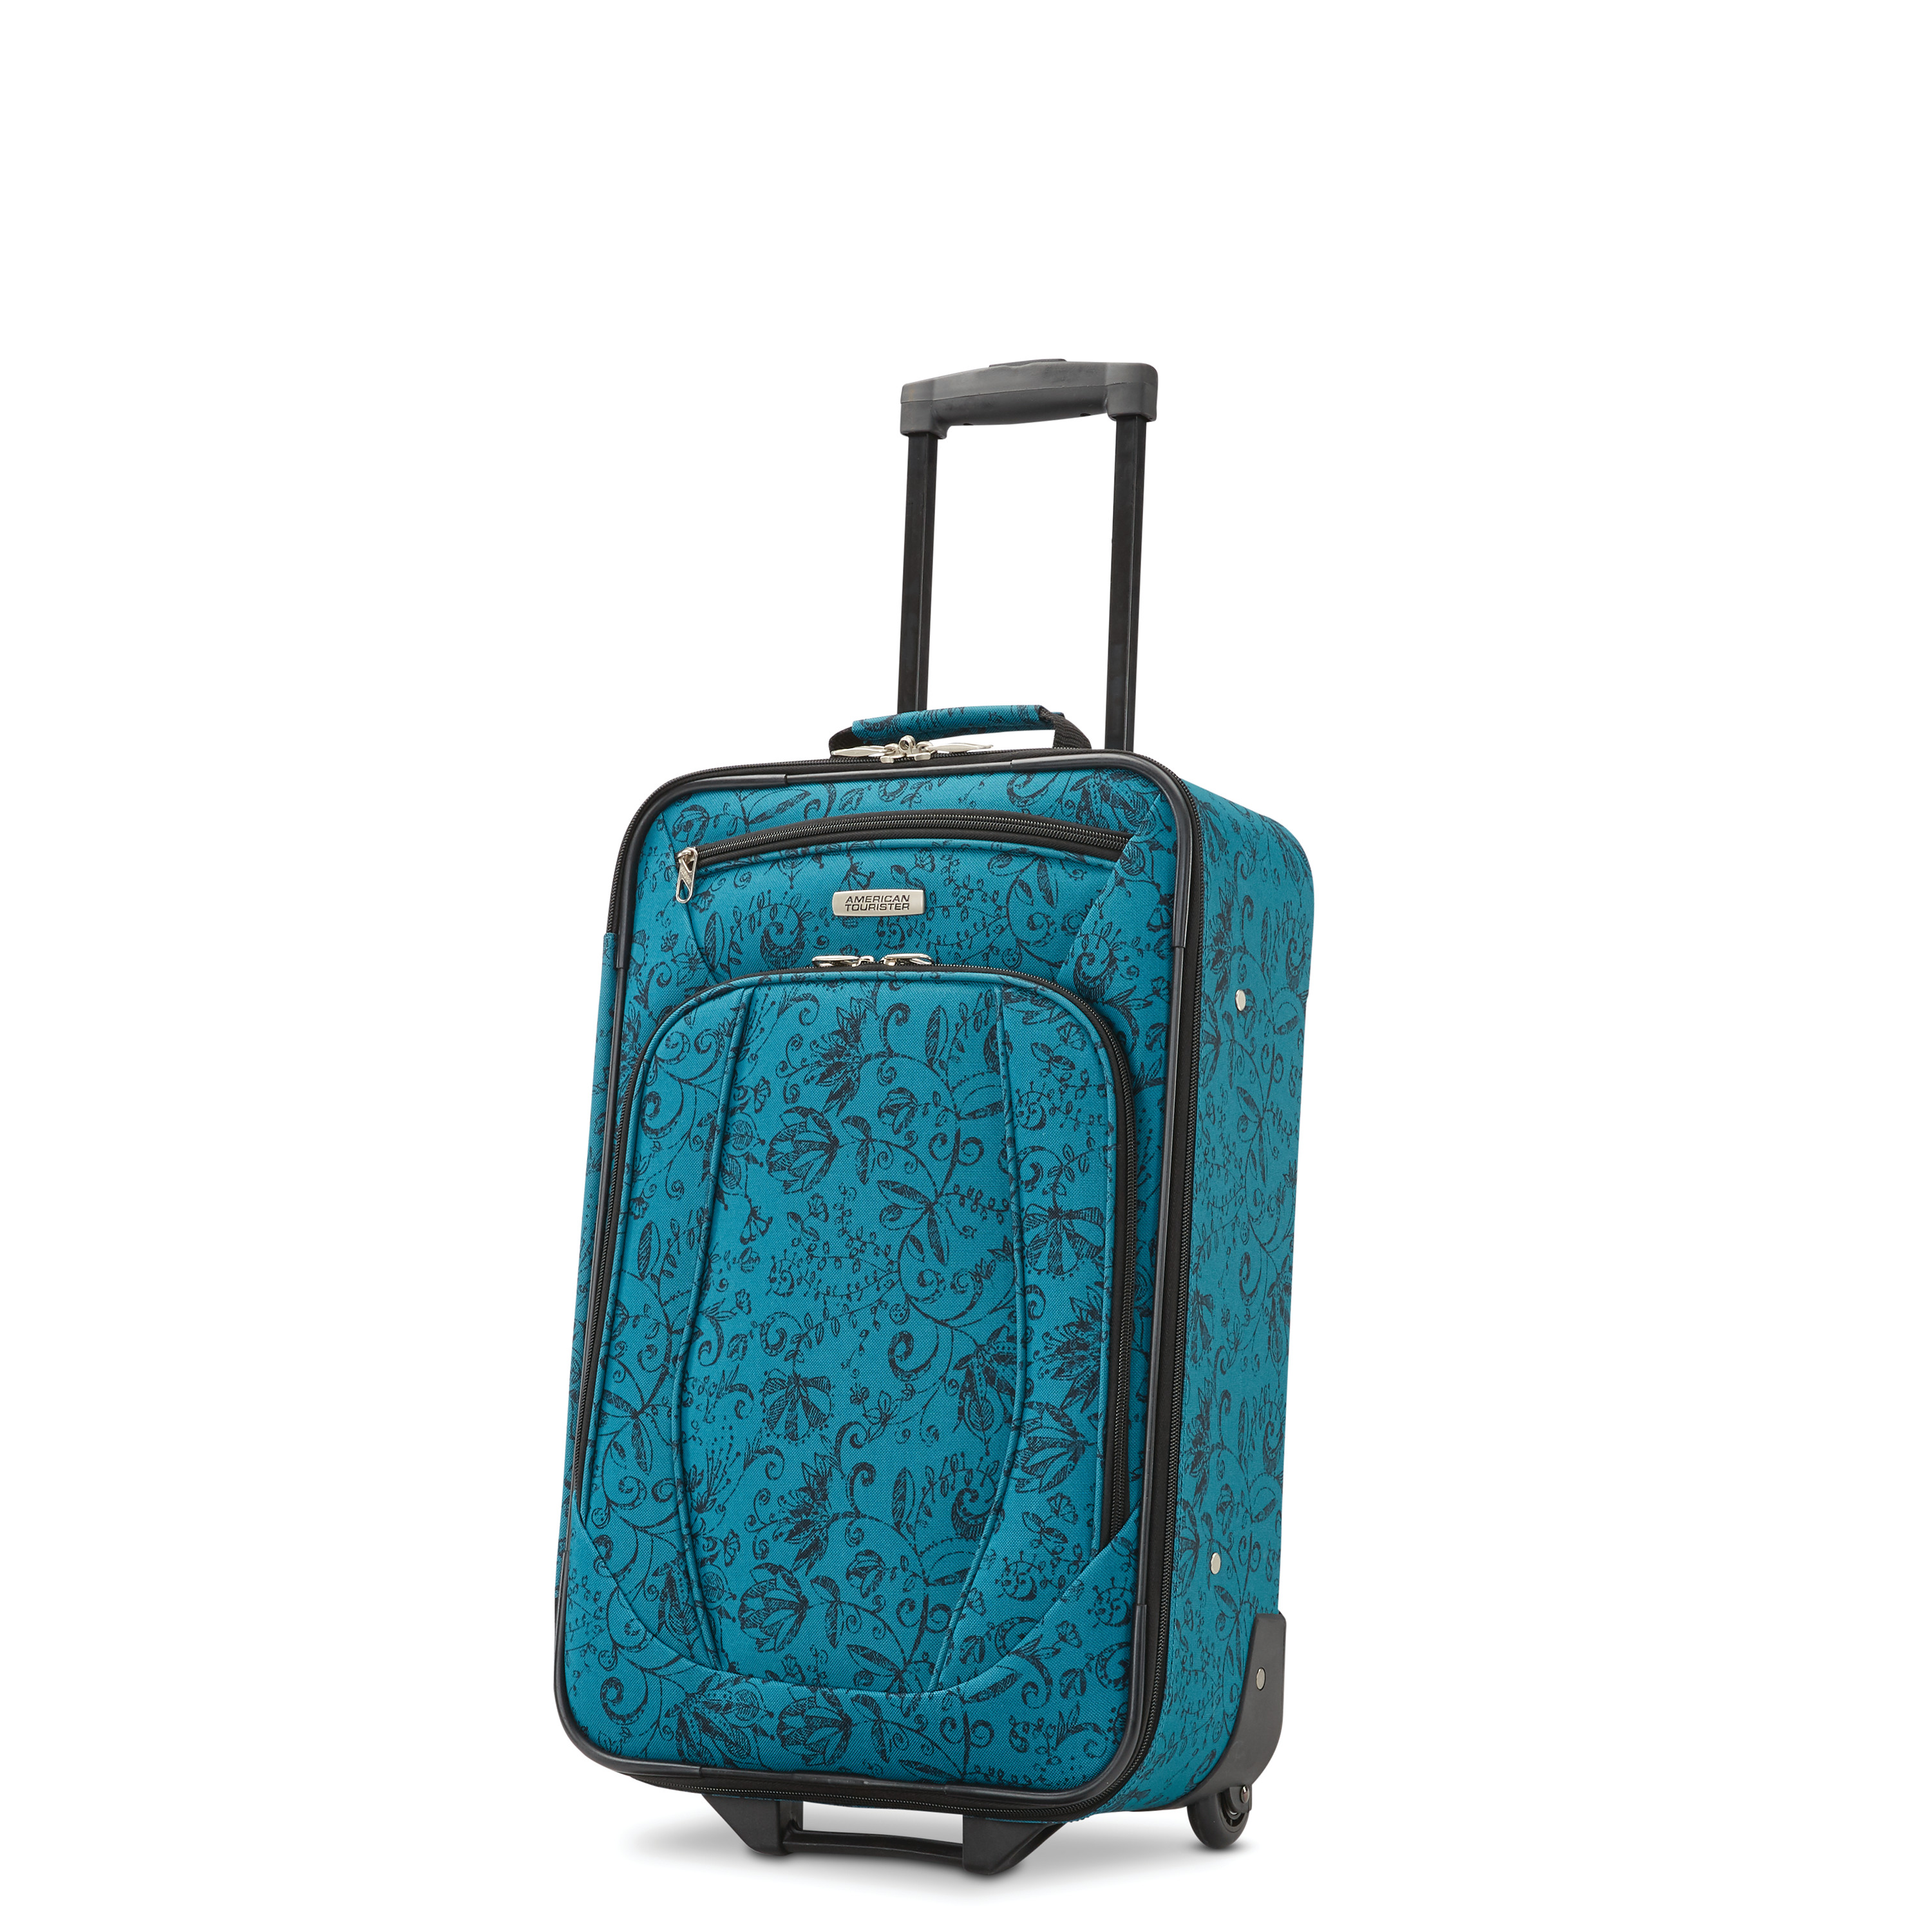 American-Tourister-Riverbend-4-Piece-Set thumbnail 16